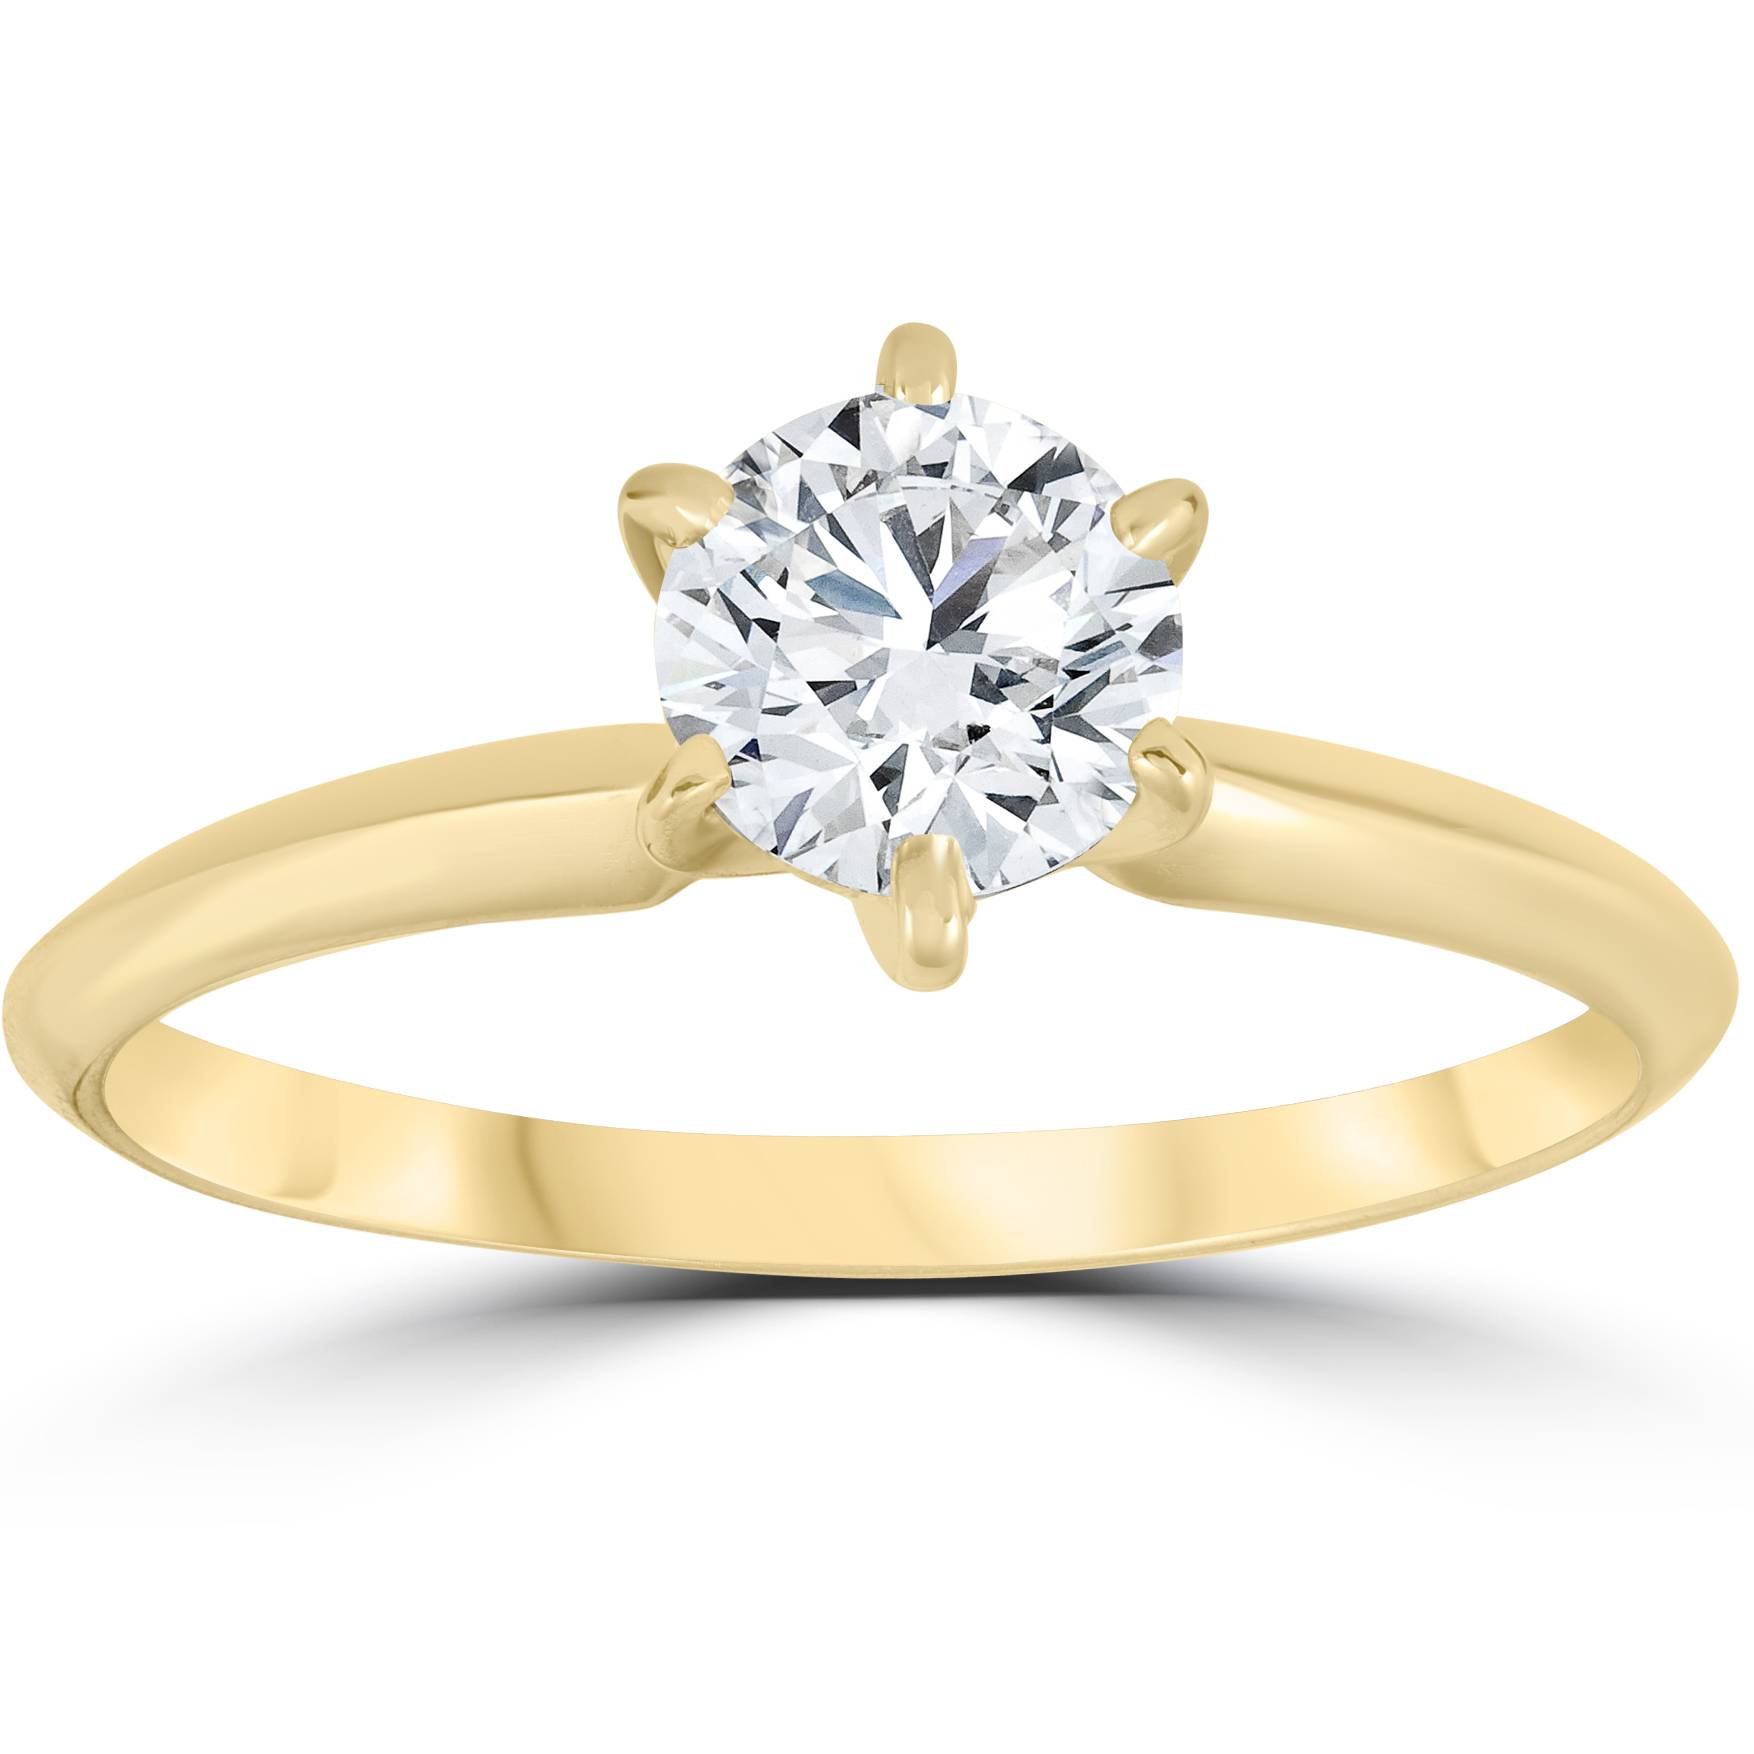 14k Yellow Gold 3/4ct Round Solitaire Diamond Engagement ...